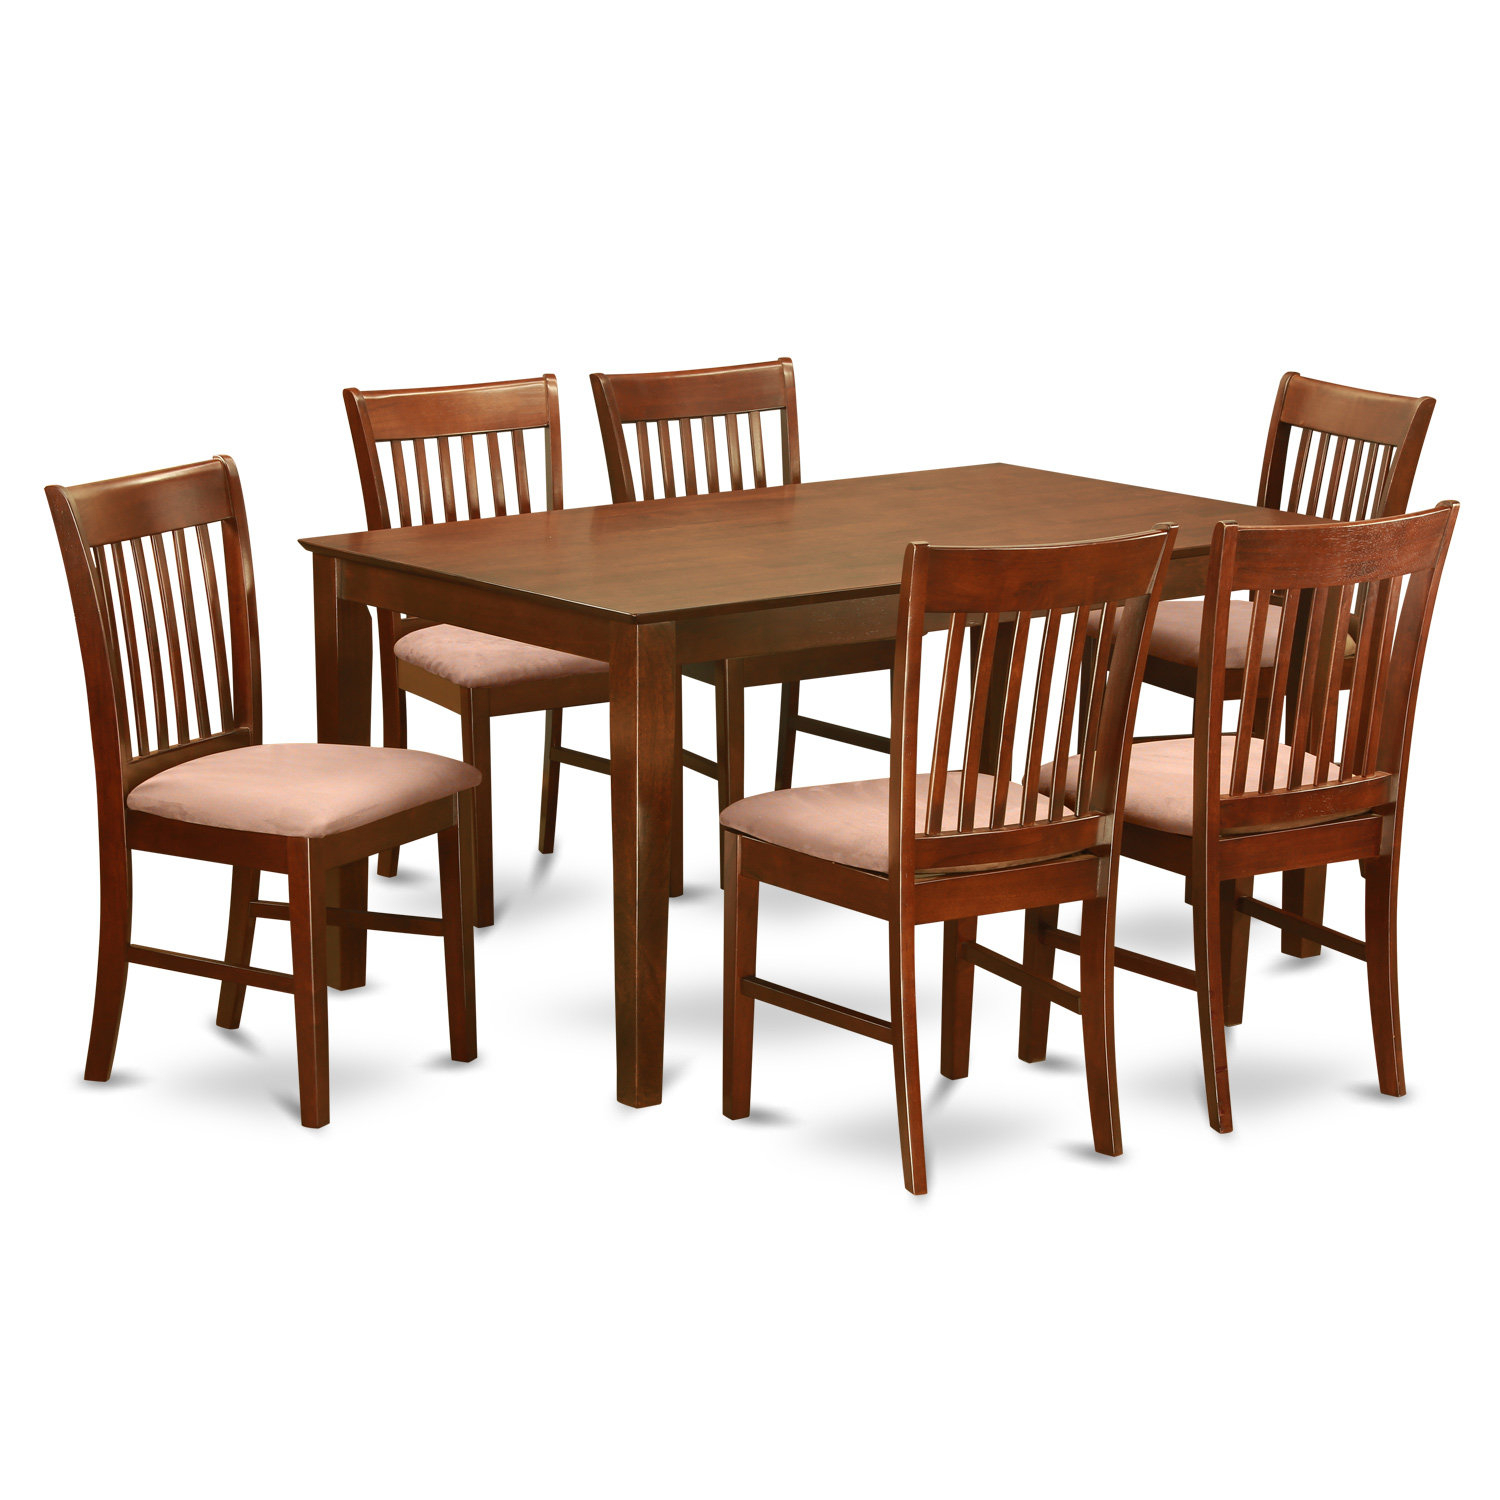 Smyrna 7 Piece Dining Set Intended For Newest Smyrna 3 Piece Dining Sets (View 8 of 20)